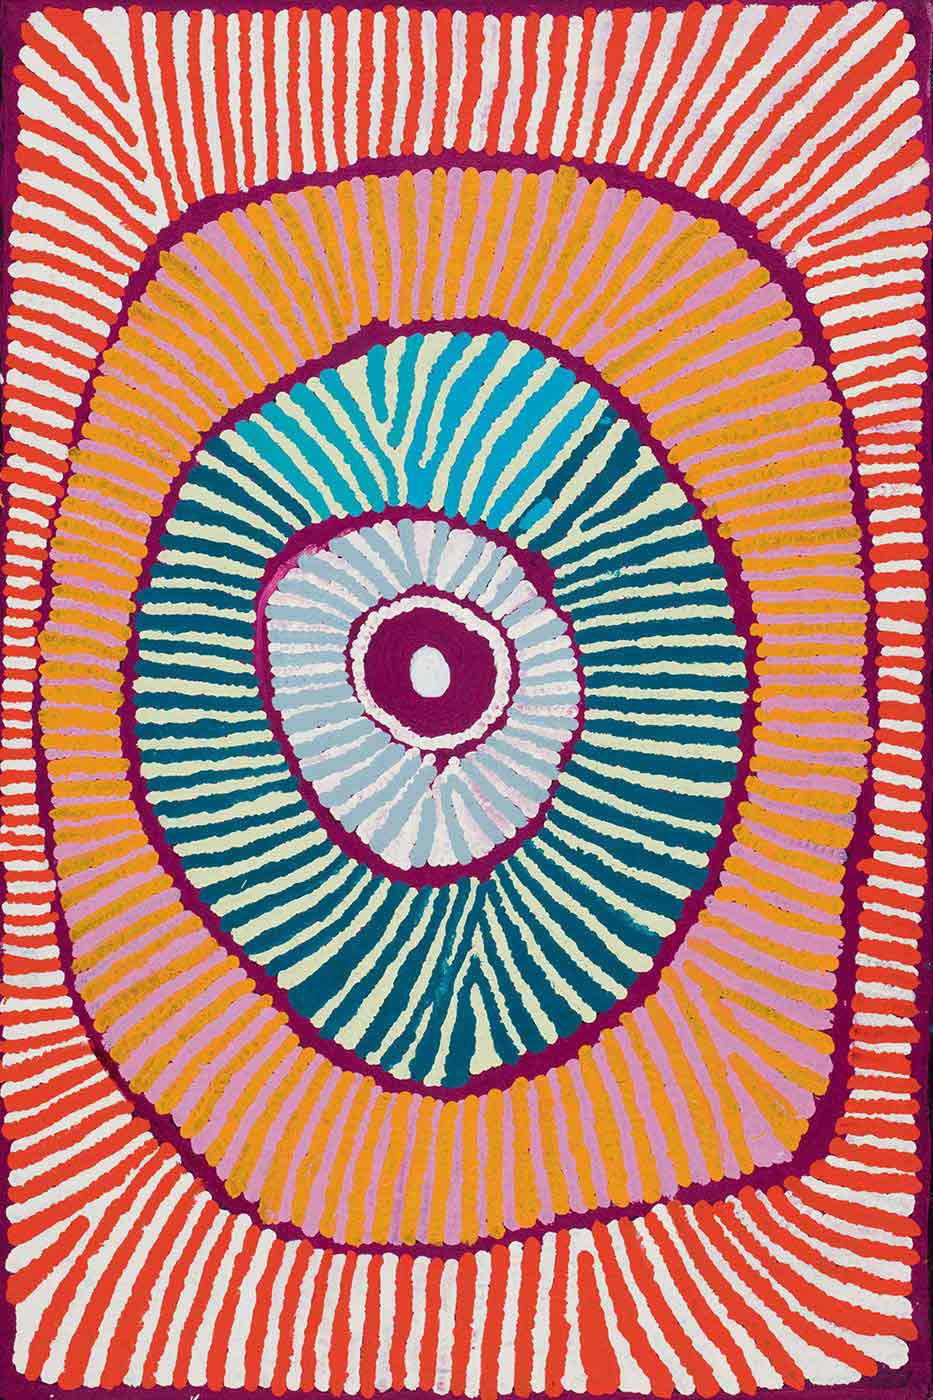 A painting on brown linen of a concentric circle with radiating lines within each ring, on a background of purple. The colours include grey with pink, cream with dark green, yellow with purple-pink and orange with cream. - click to view larger image